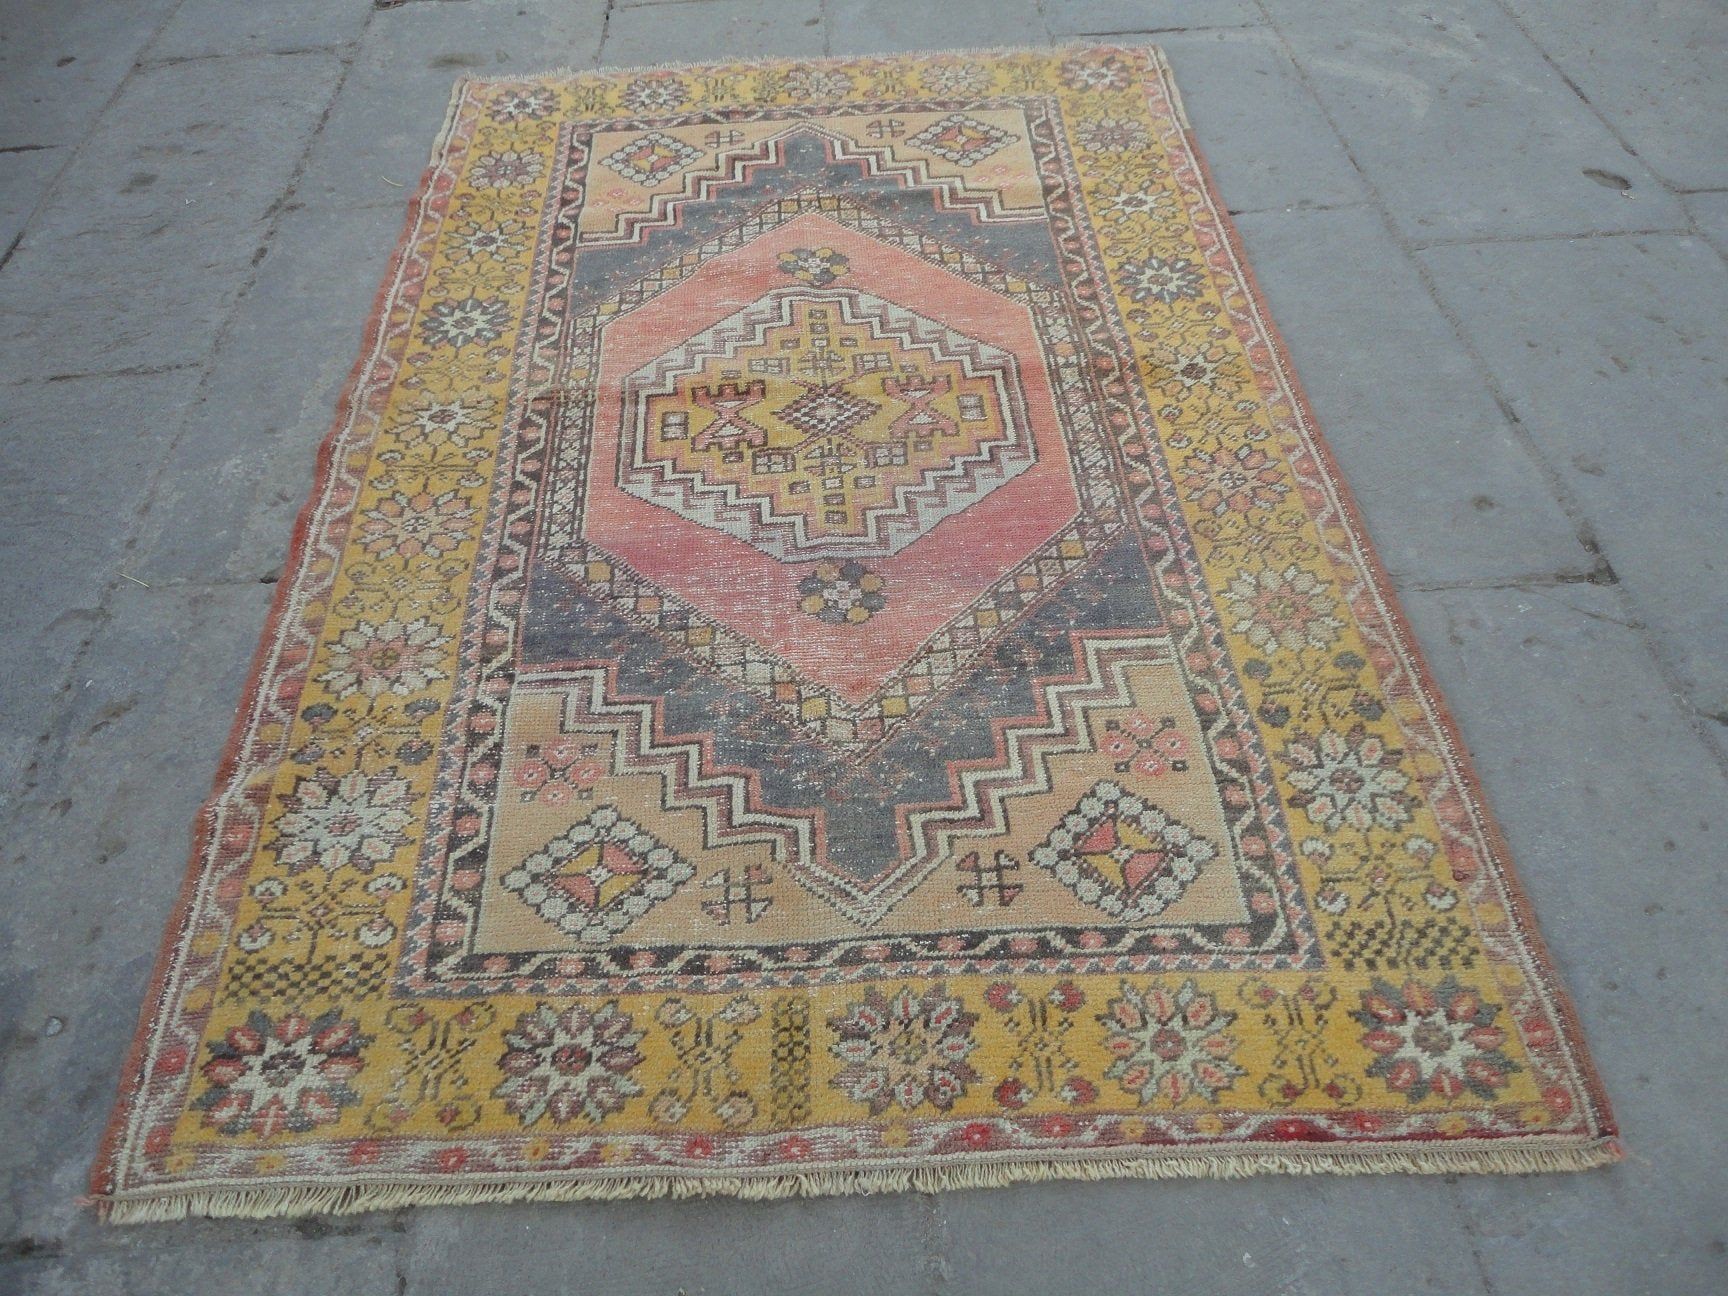 Rug On Carpet Bedroom Best Of Turkish Rug 3x5 Ft Low Pile Carpet Bedroom Rug 167 X 110 Cm